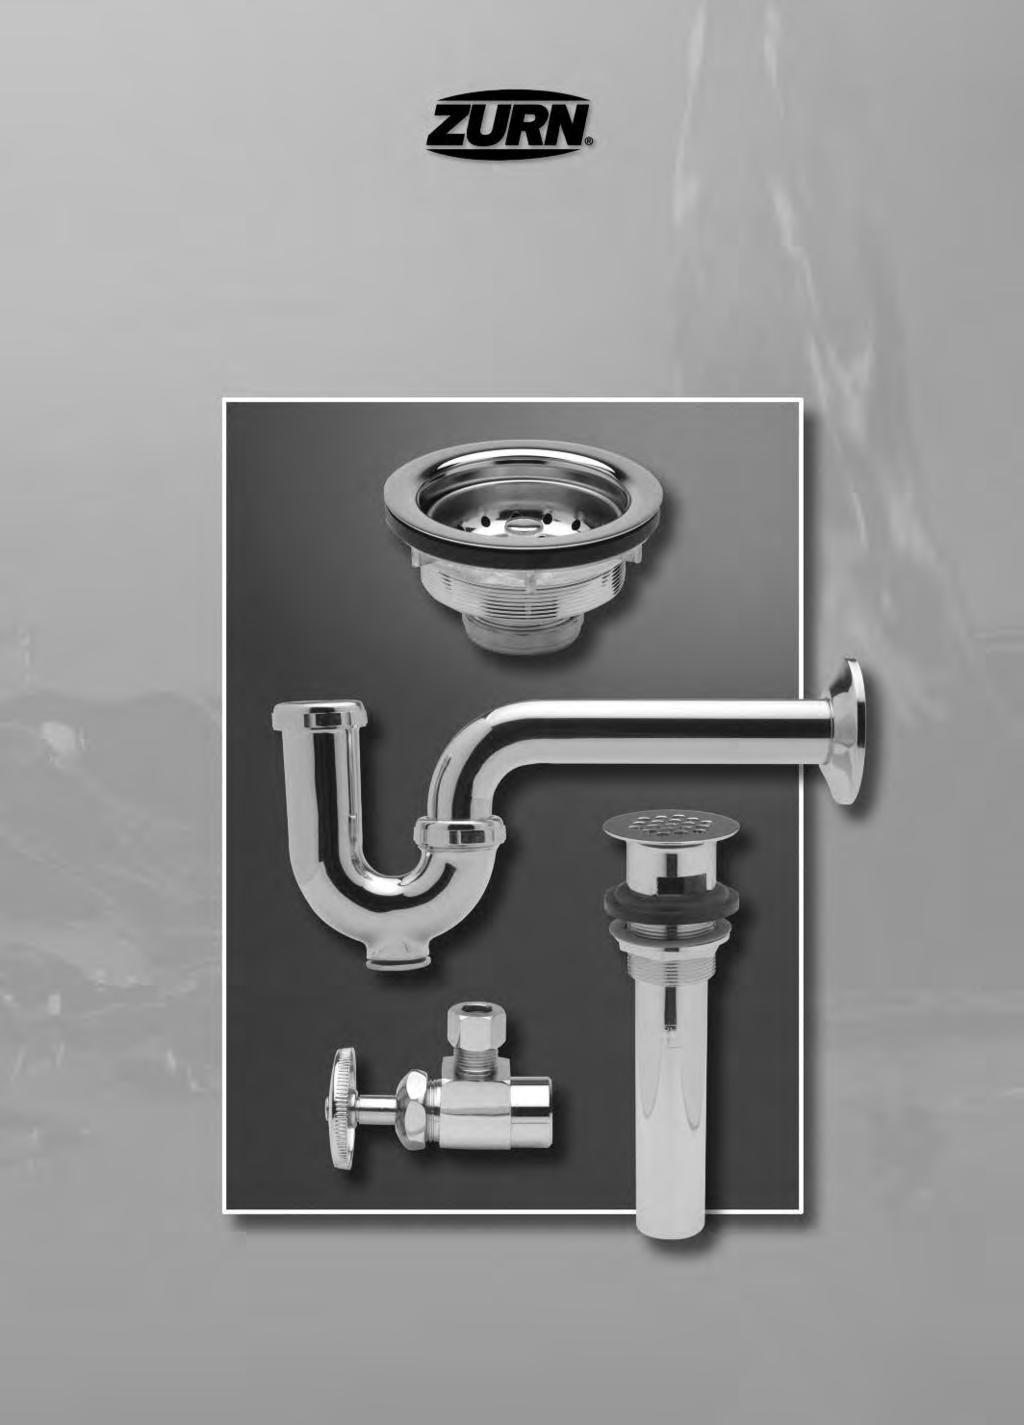 TUBULAR BRASS PLUMBING PRODUCTS PRICE GUIDE